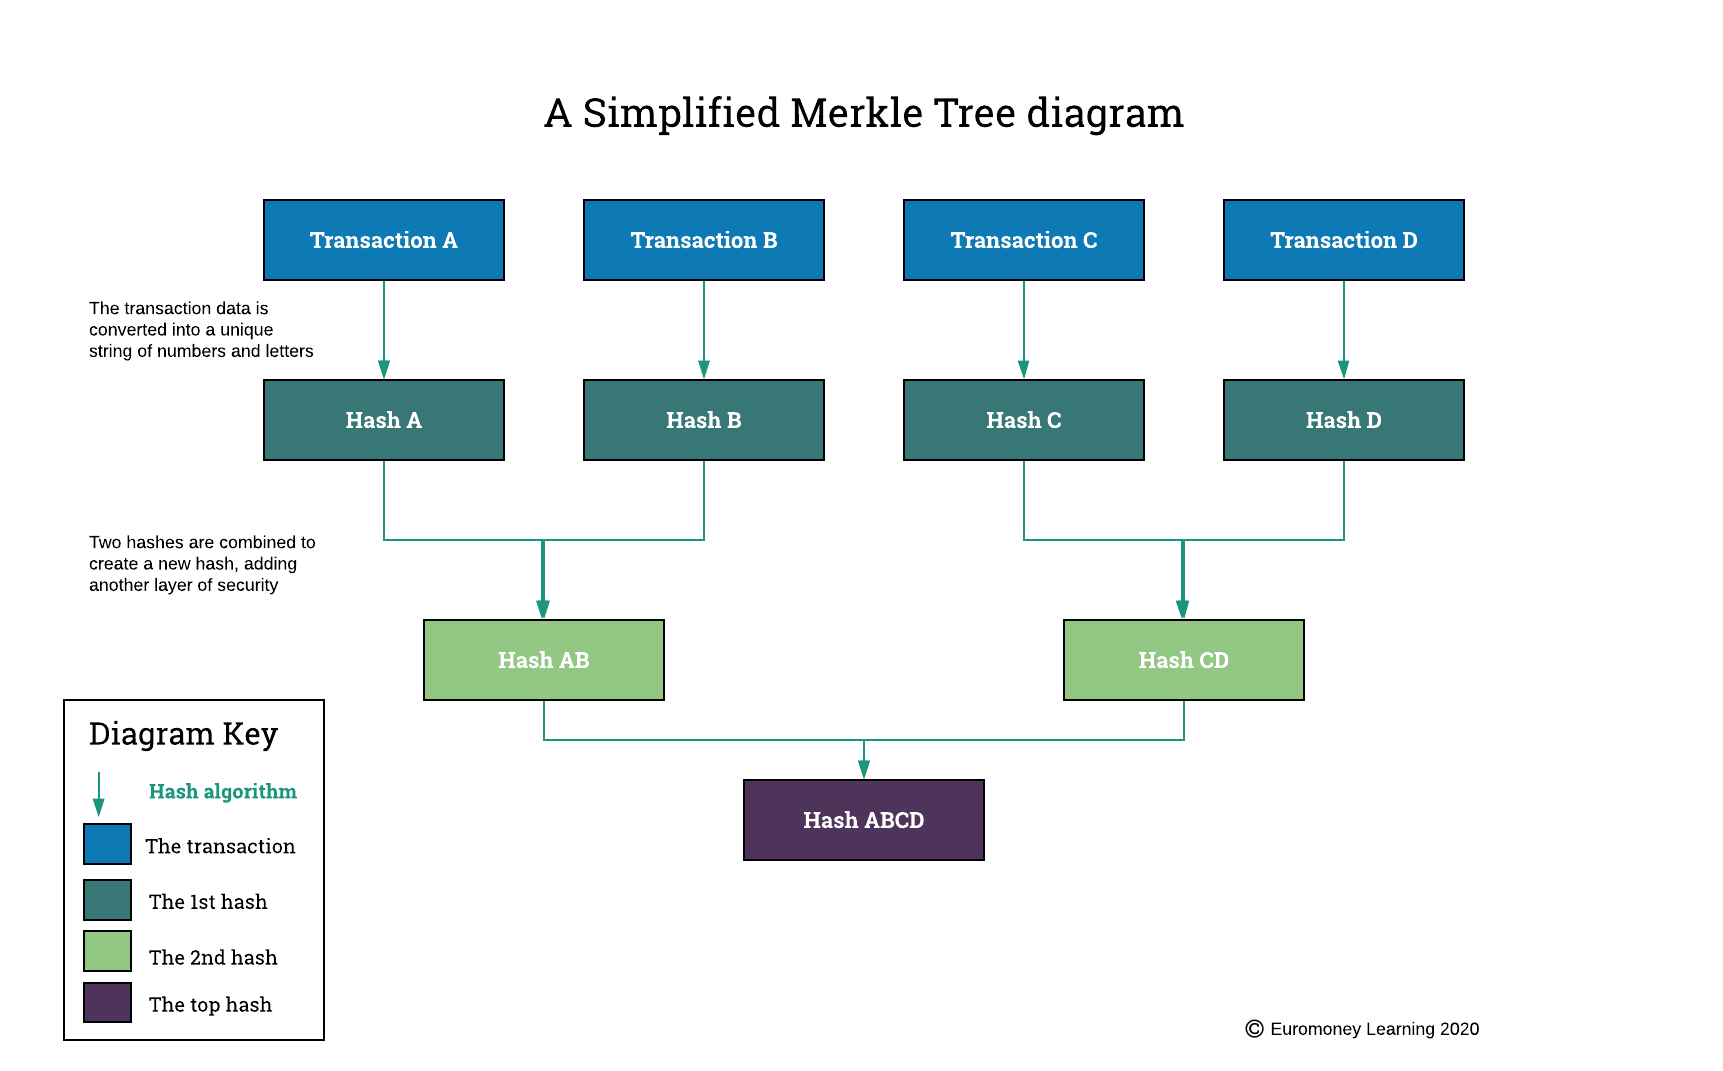 A Simplified Merkle Tree Diagram | Blockchain Explained - How blockchain data is stored and secured | Euromoney Learning